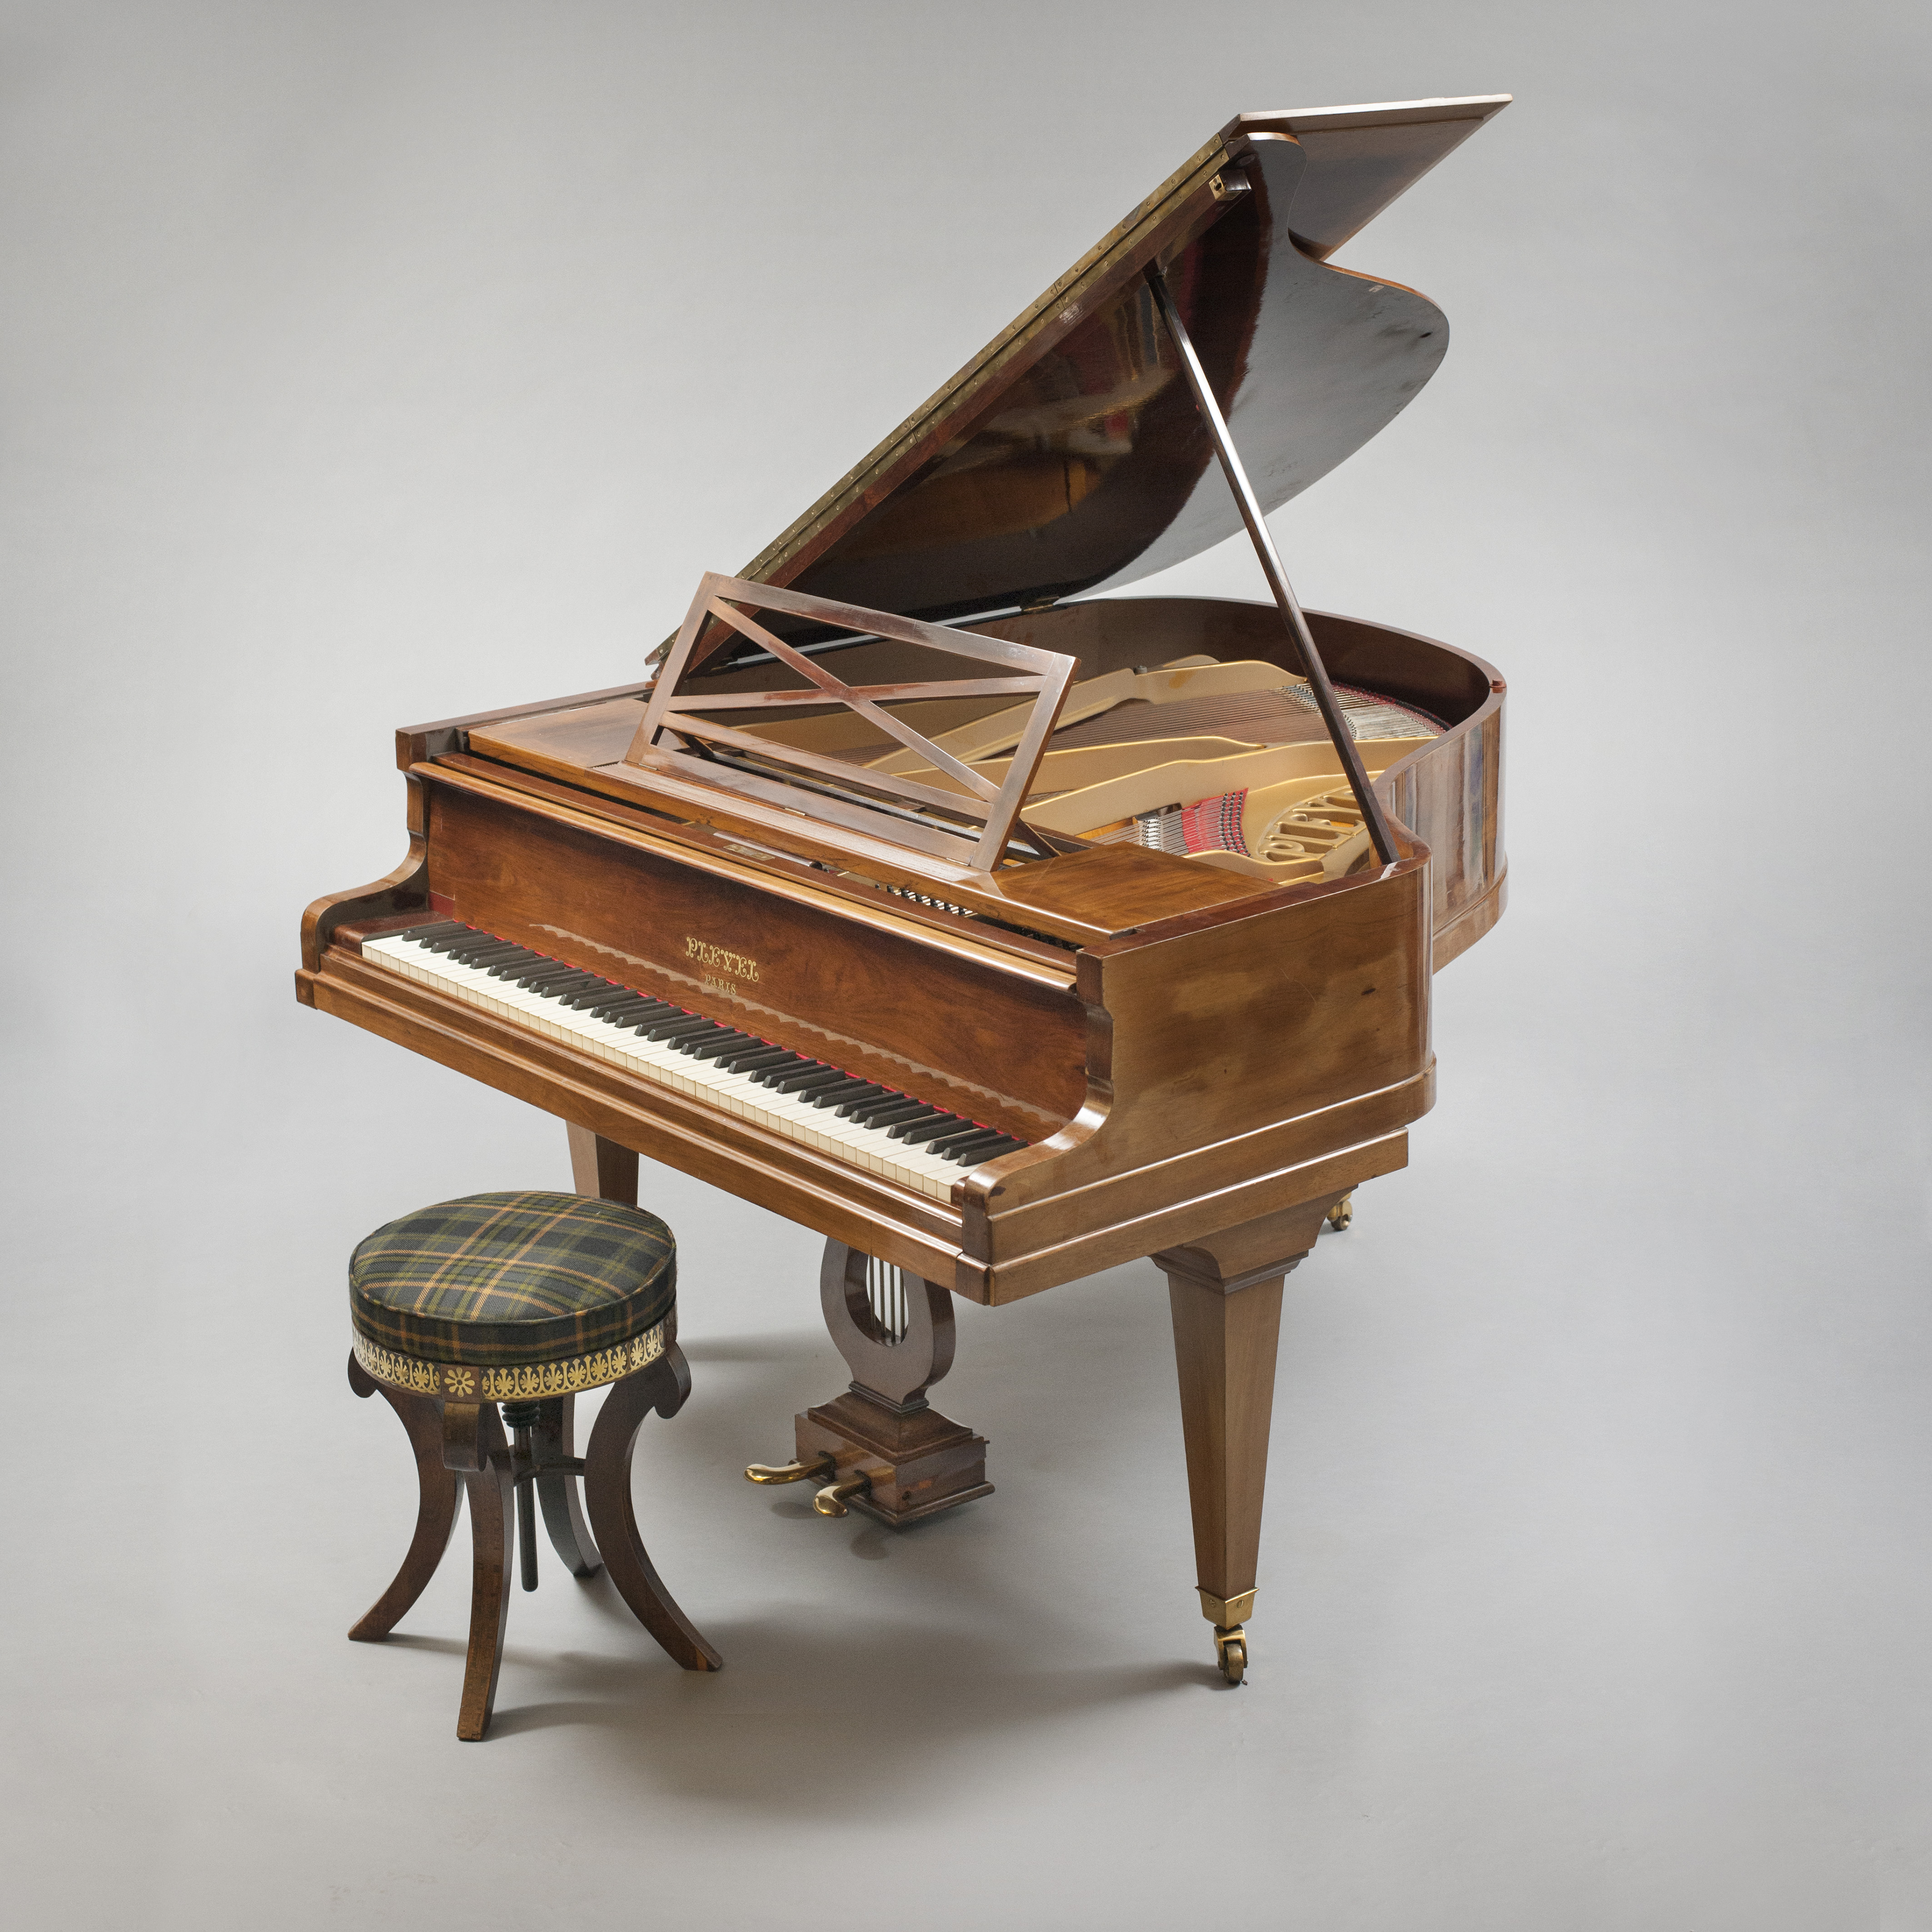 Le piano d'Yves Montand